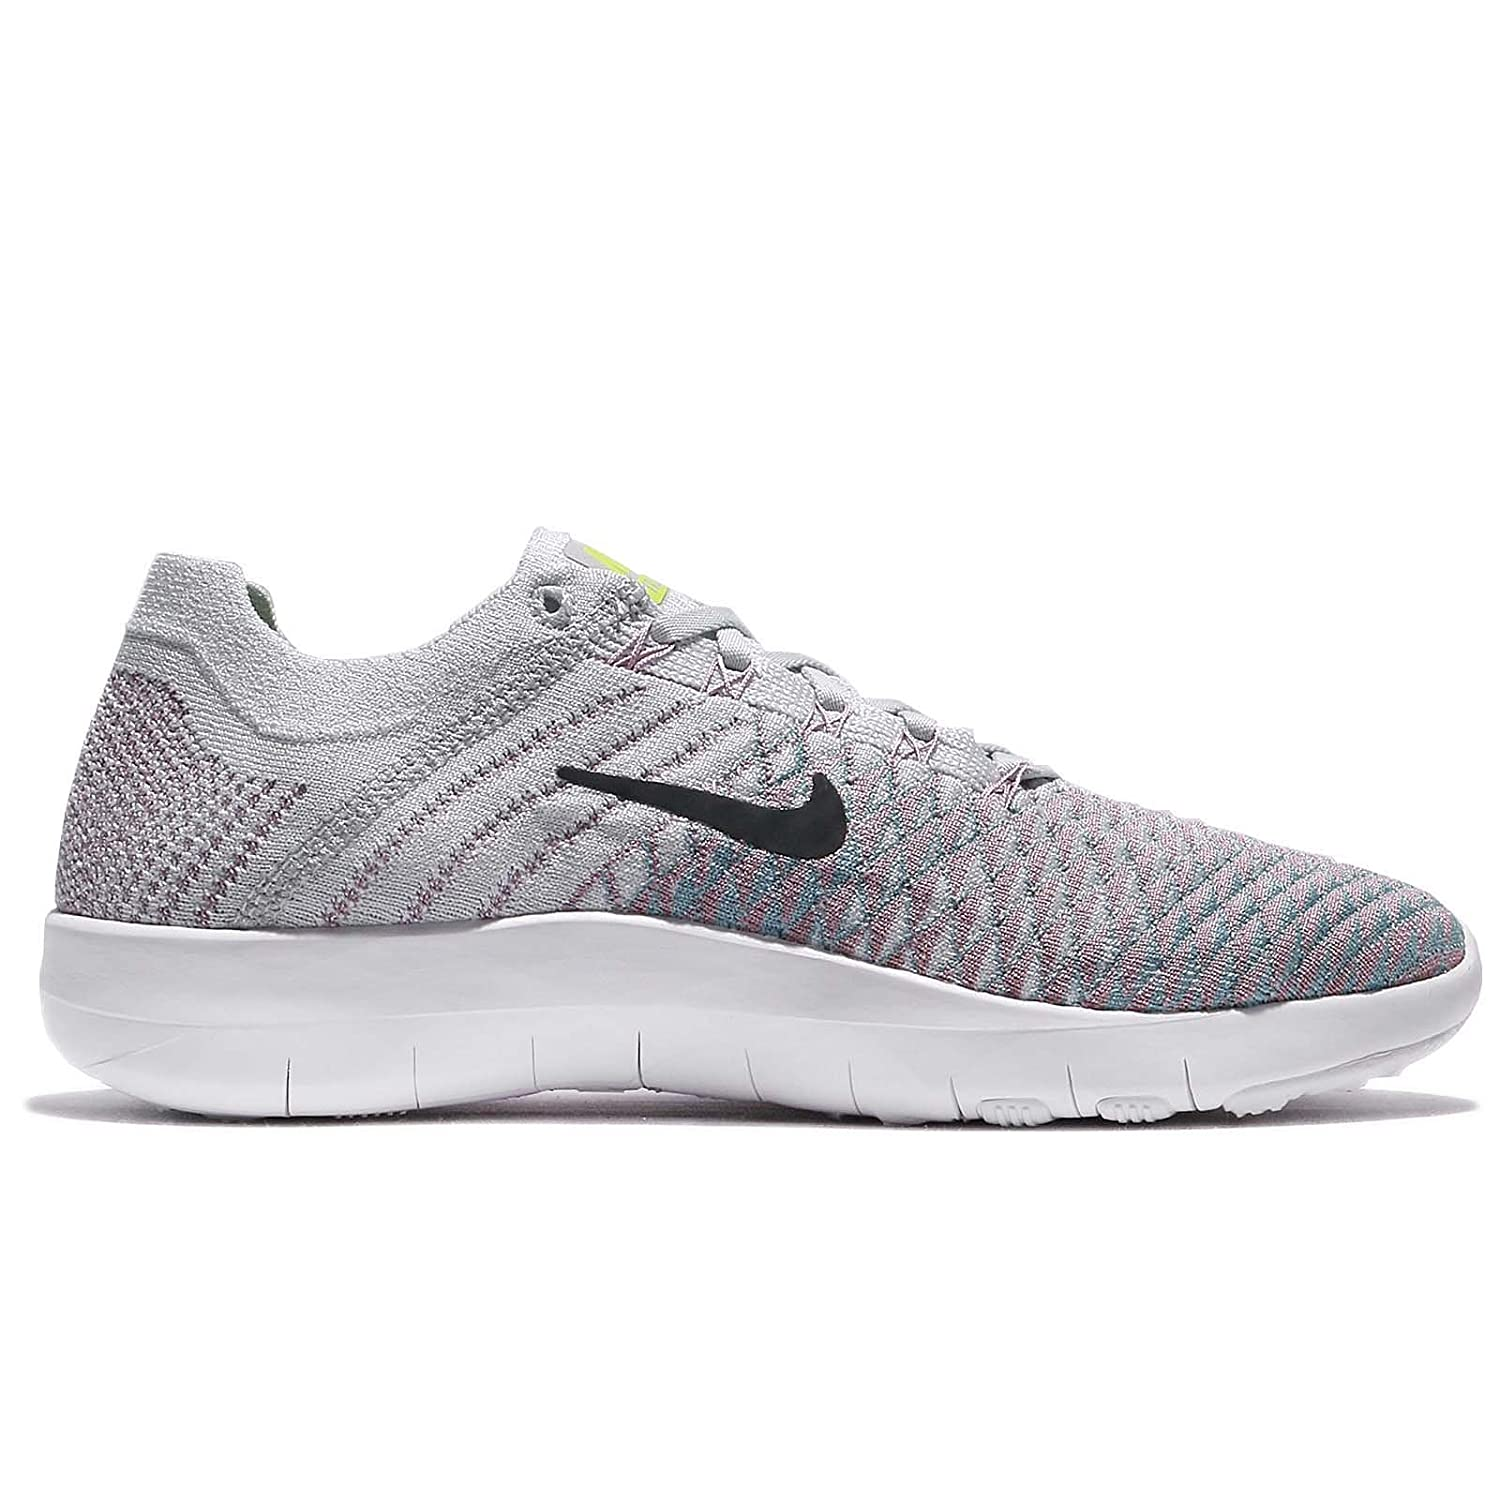 cheaper 2df26 c284d Nike Women s Free Tr Flyknit 2 Fitness Shoes  Amazon.co.uk  Shoes   Bags